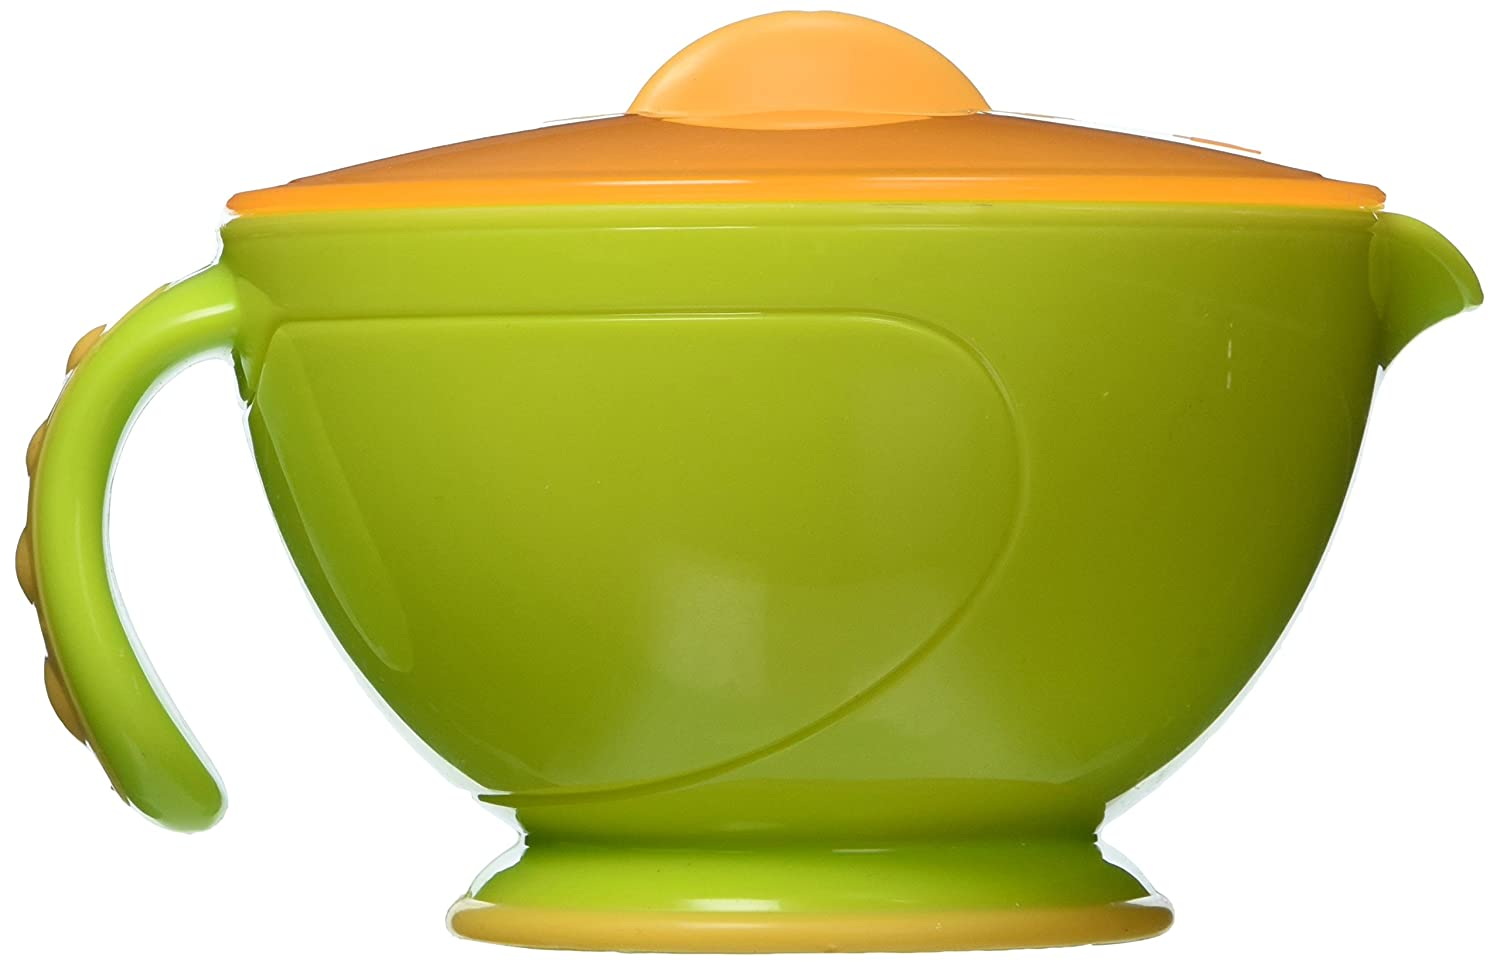 Nuby Garden Fresh Steam 'N' Mash Baby Food Prep Bowl and Food Masher Green/Orange